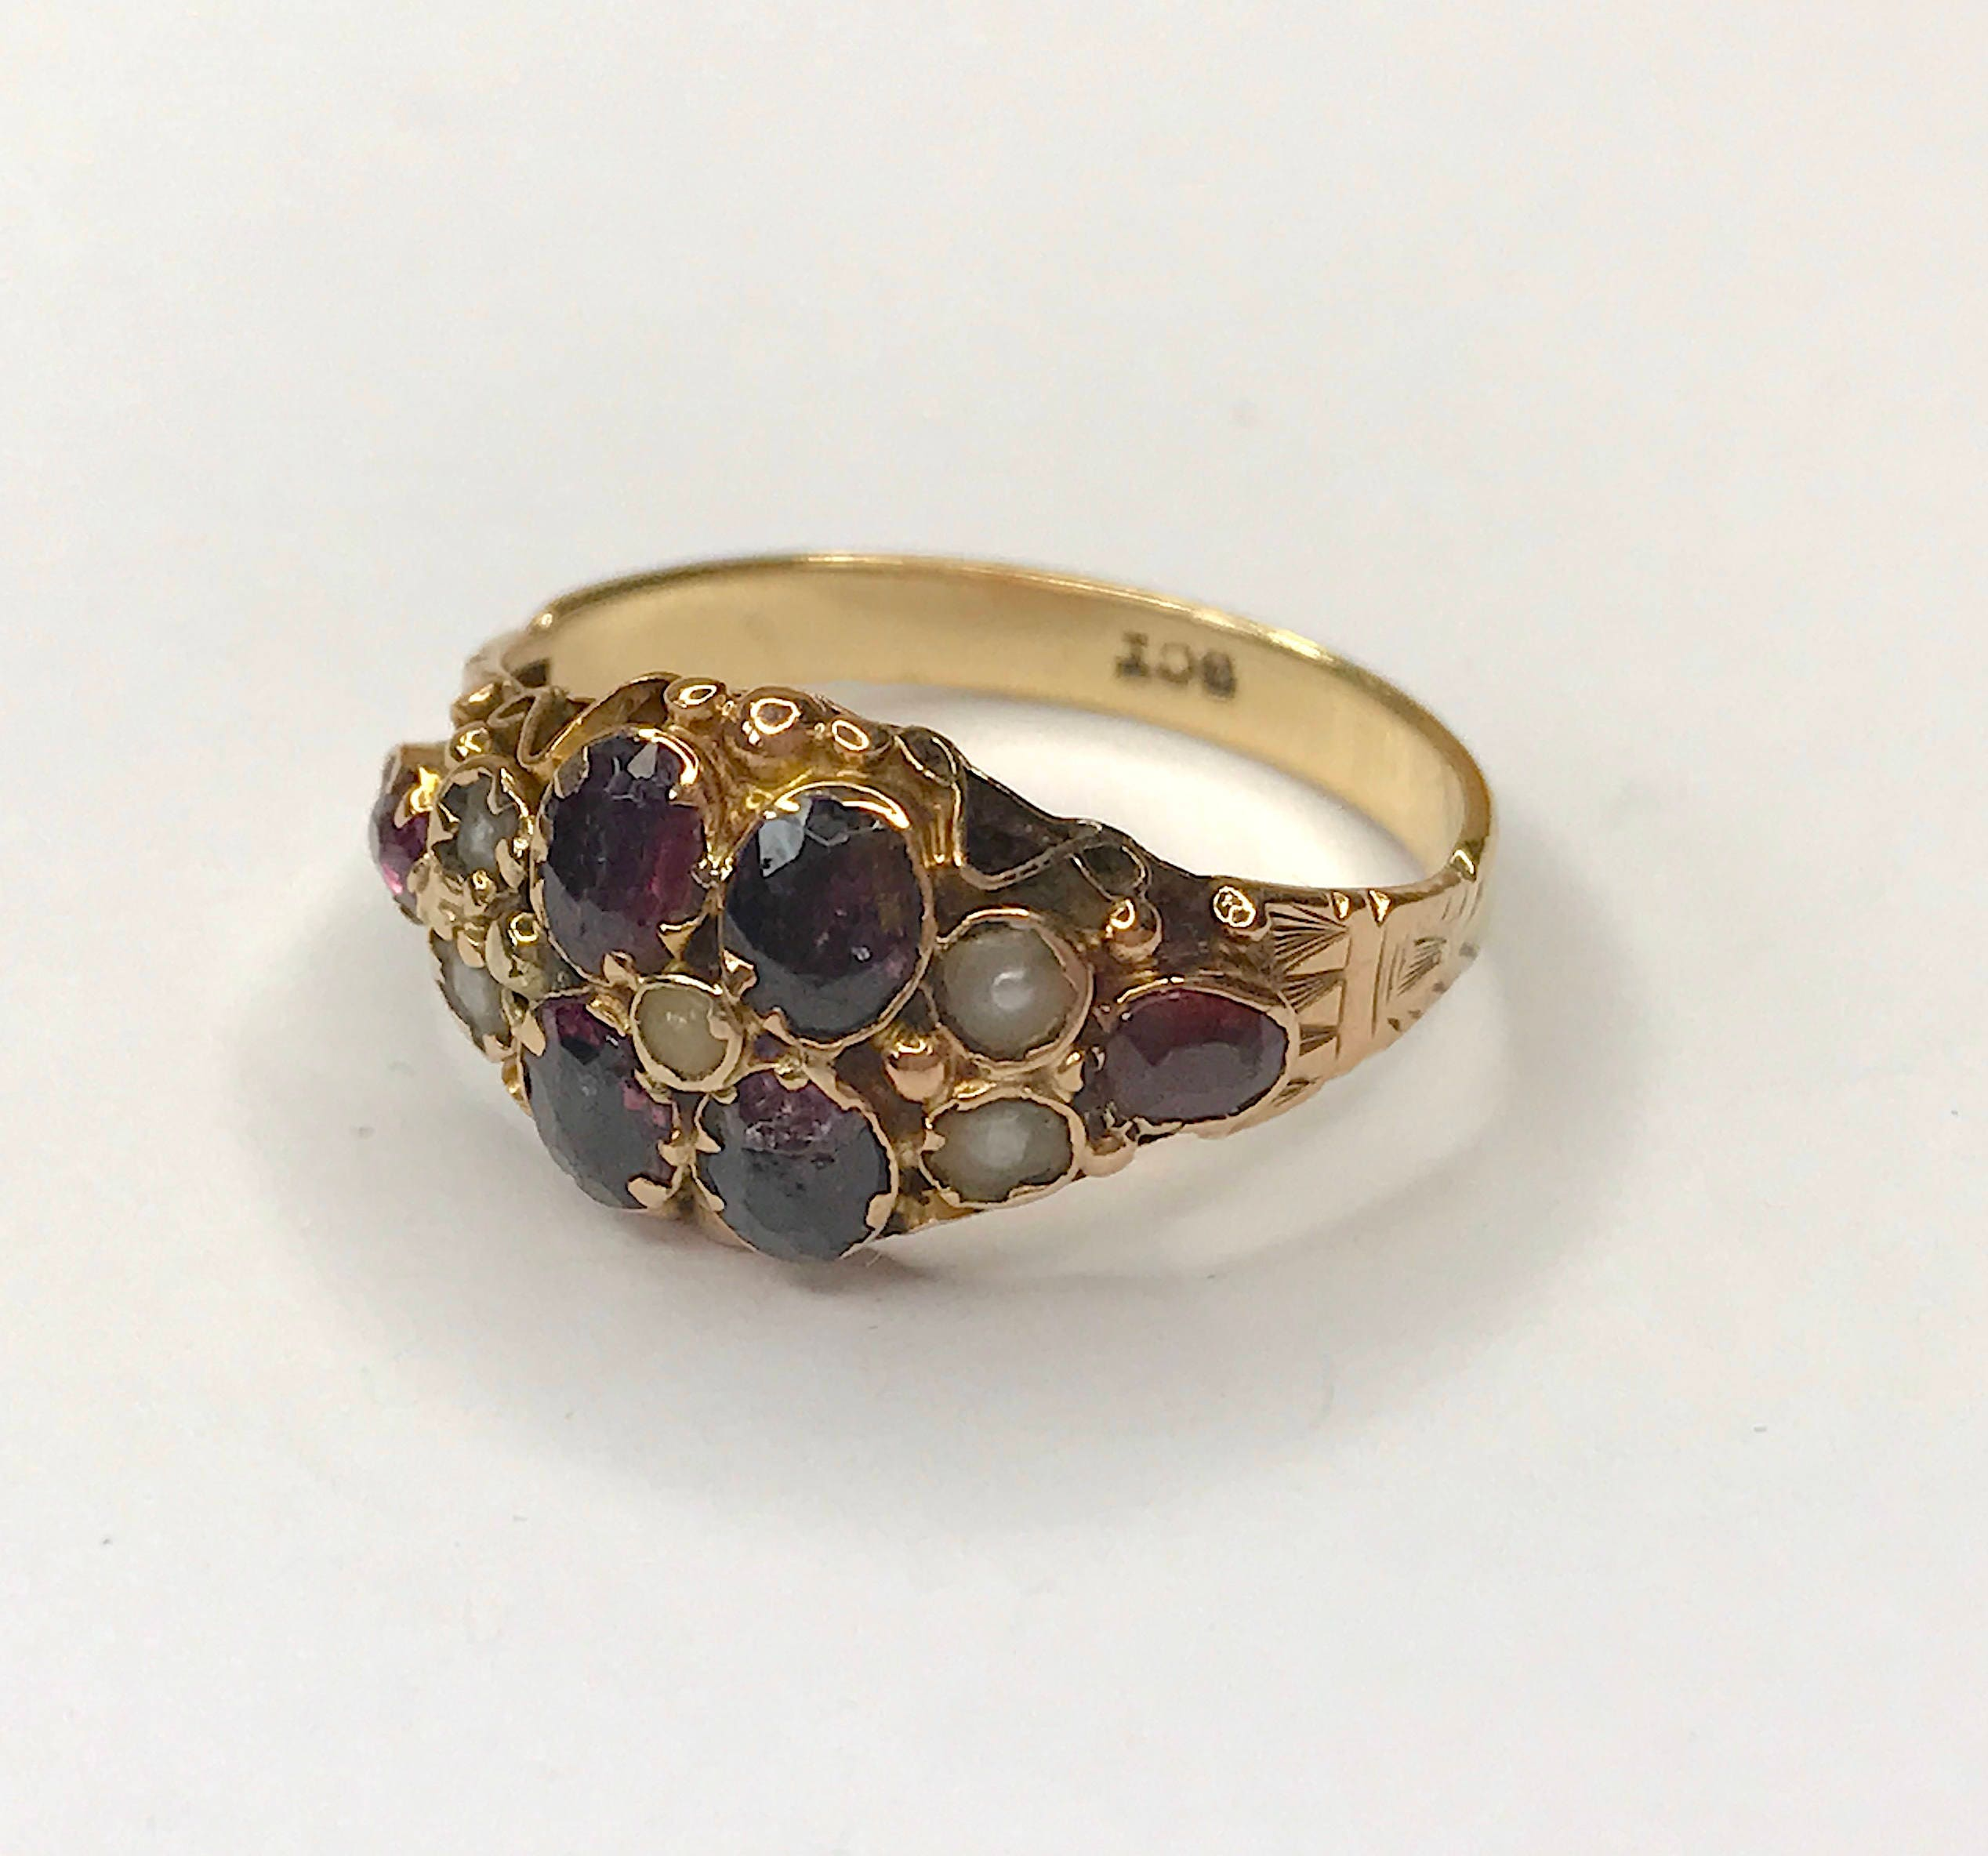 Antique MidVictorian Garnet and Seed Pearl Ring in 9ct Gold